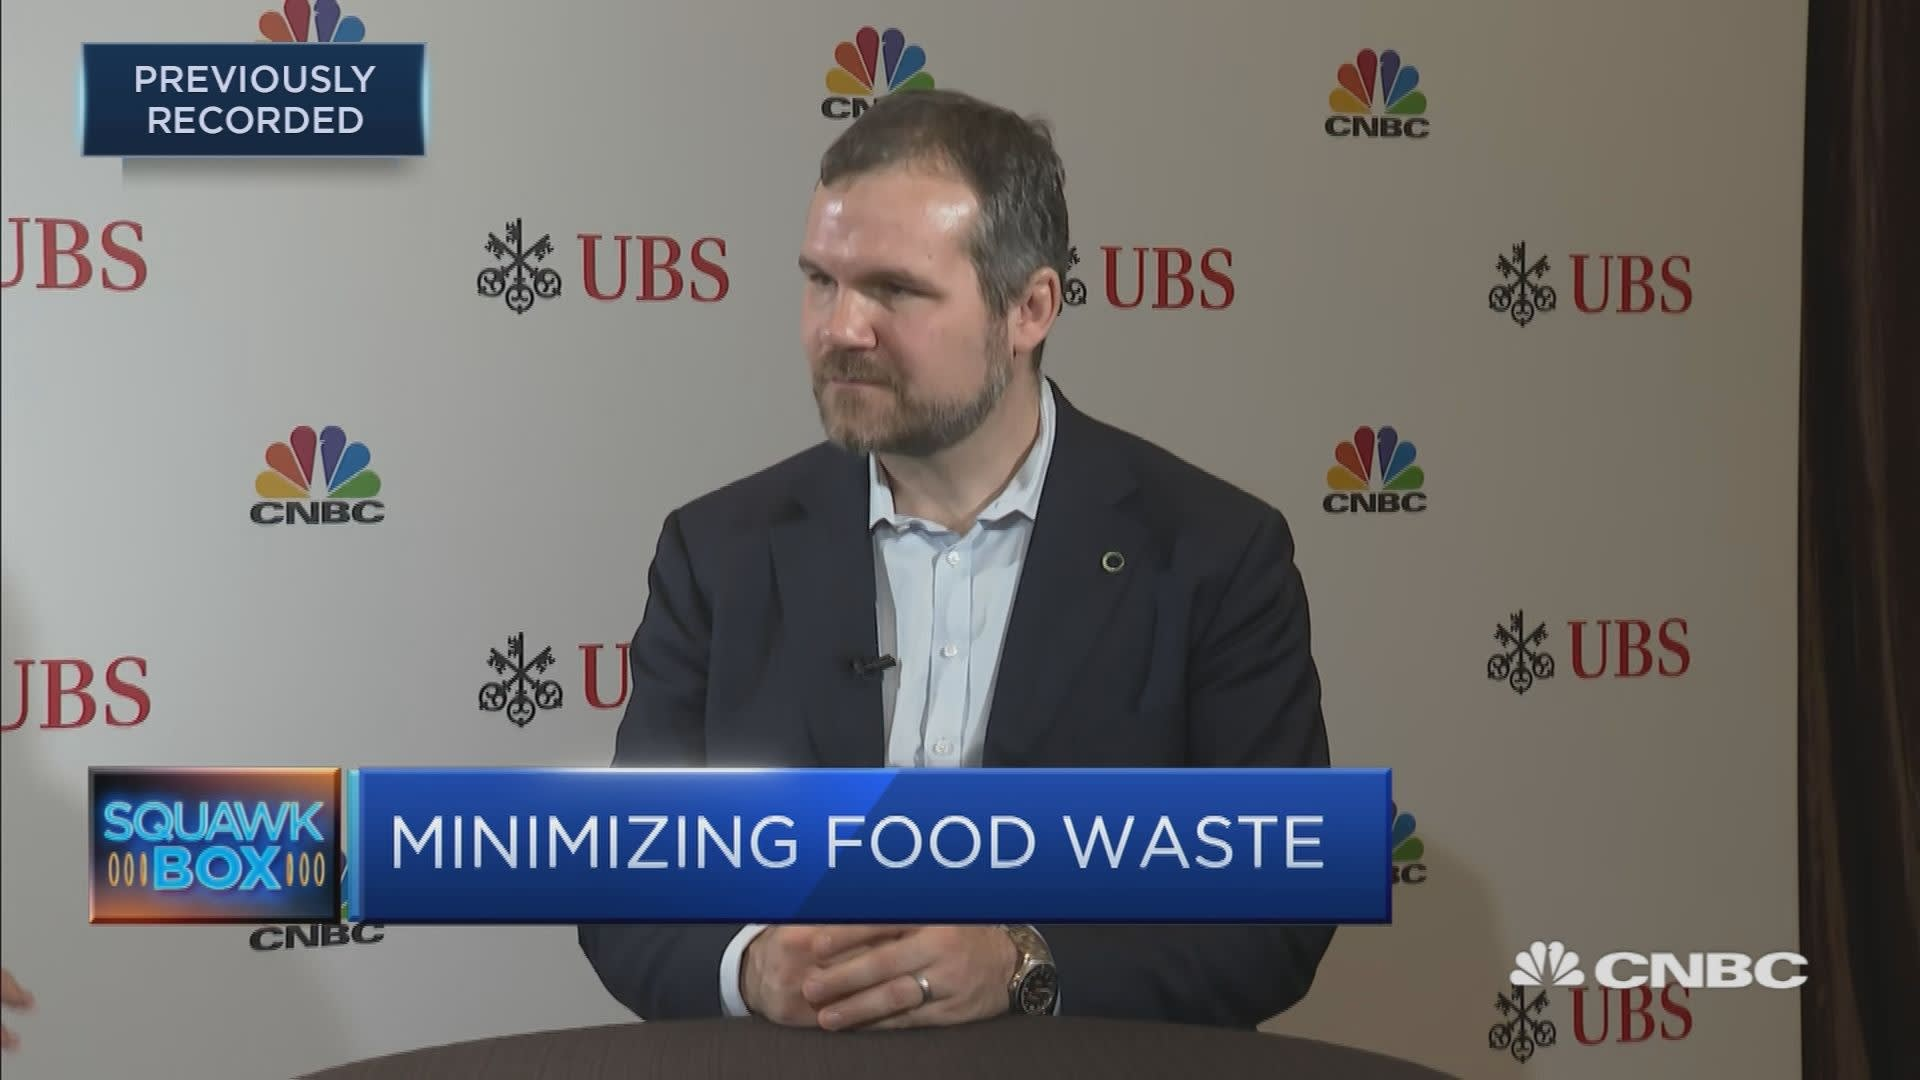 Winnow Solutions uses A.I. to help companies curb food wastage